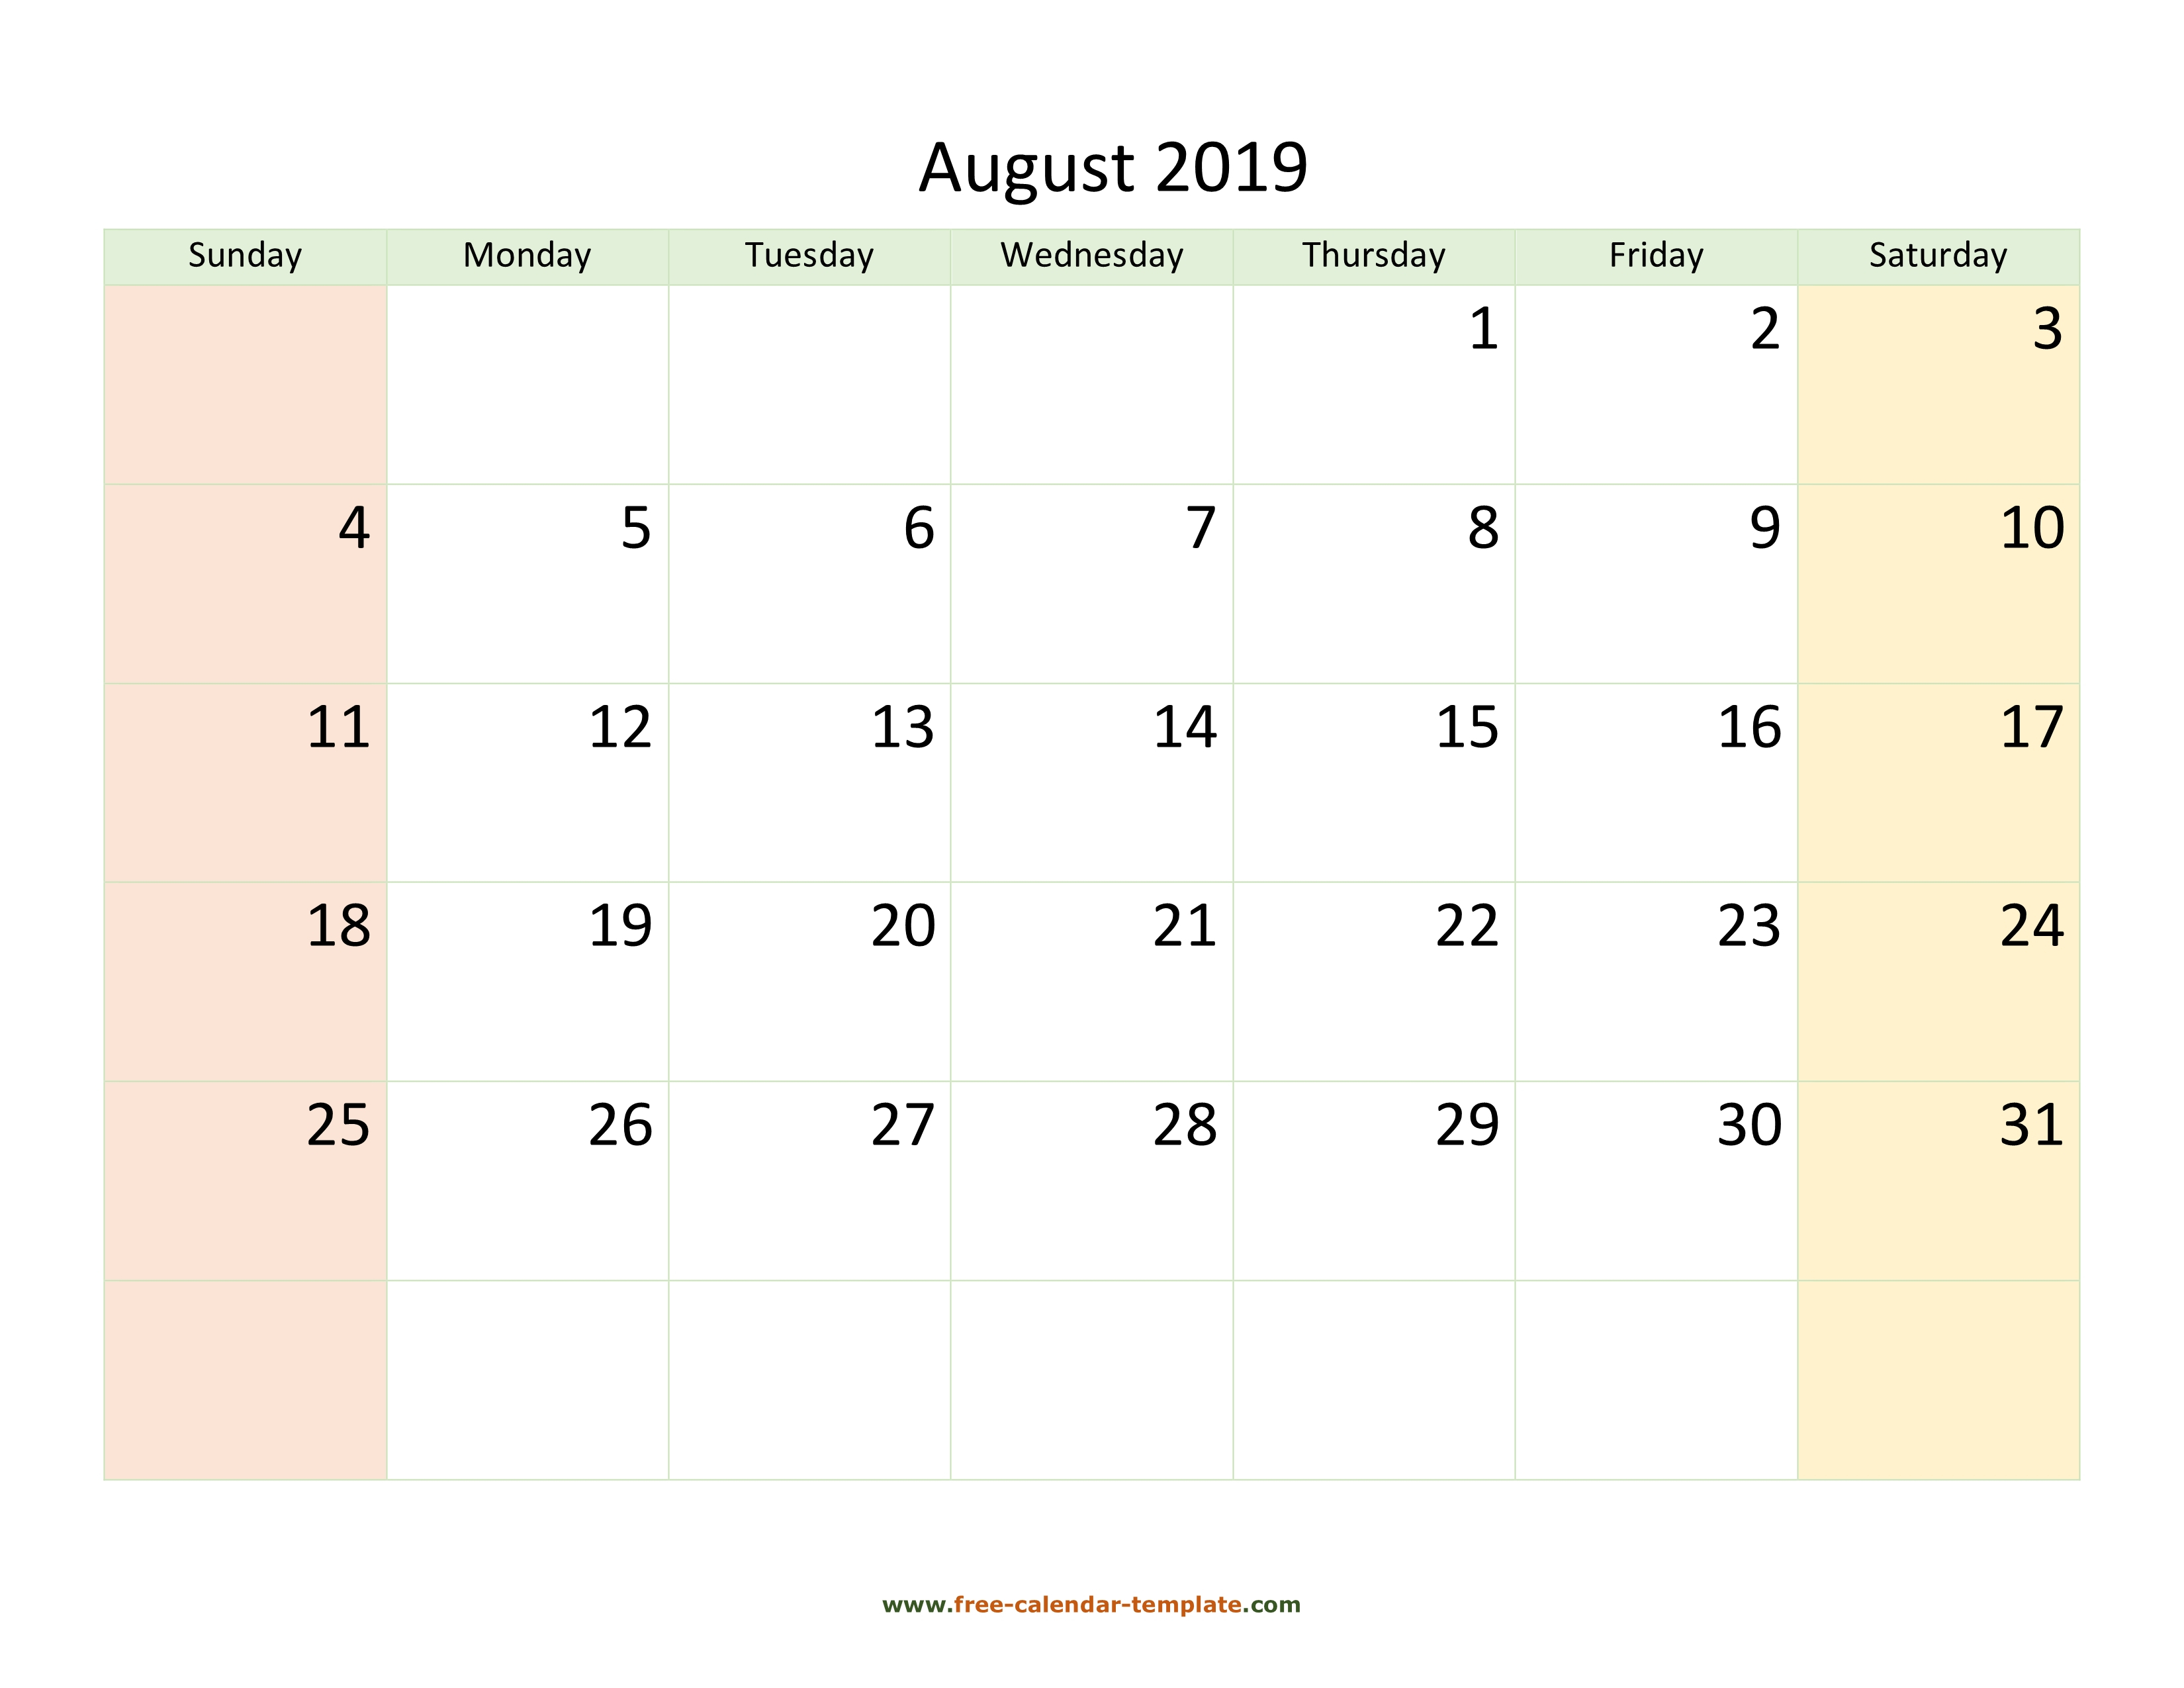 August 2019 Free Calendar Tempplate | Free-Calendar-Template pertaining to Blank August Colorful Calendar